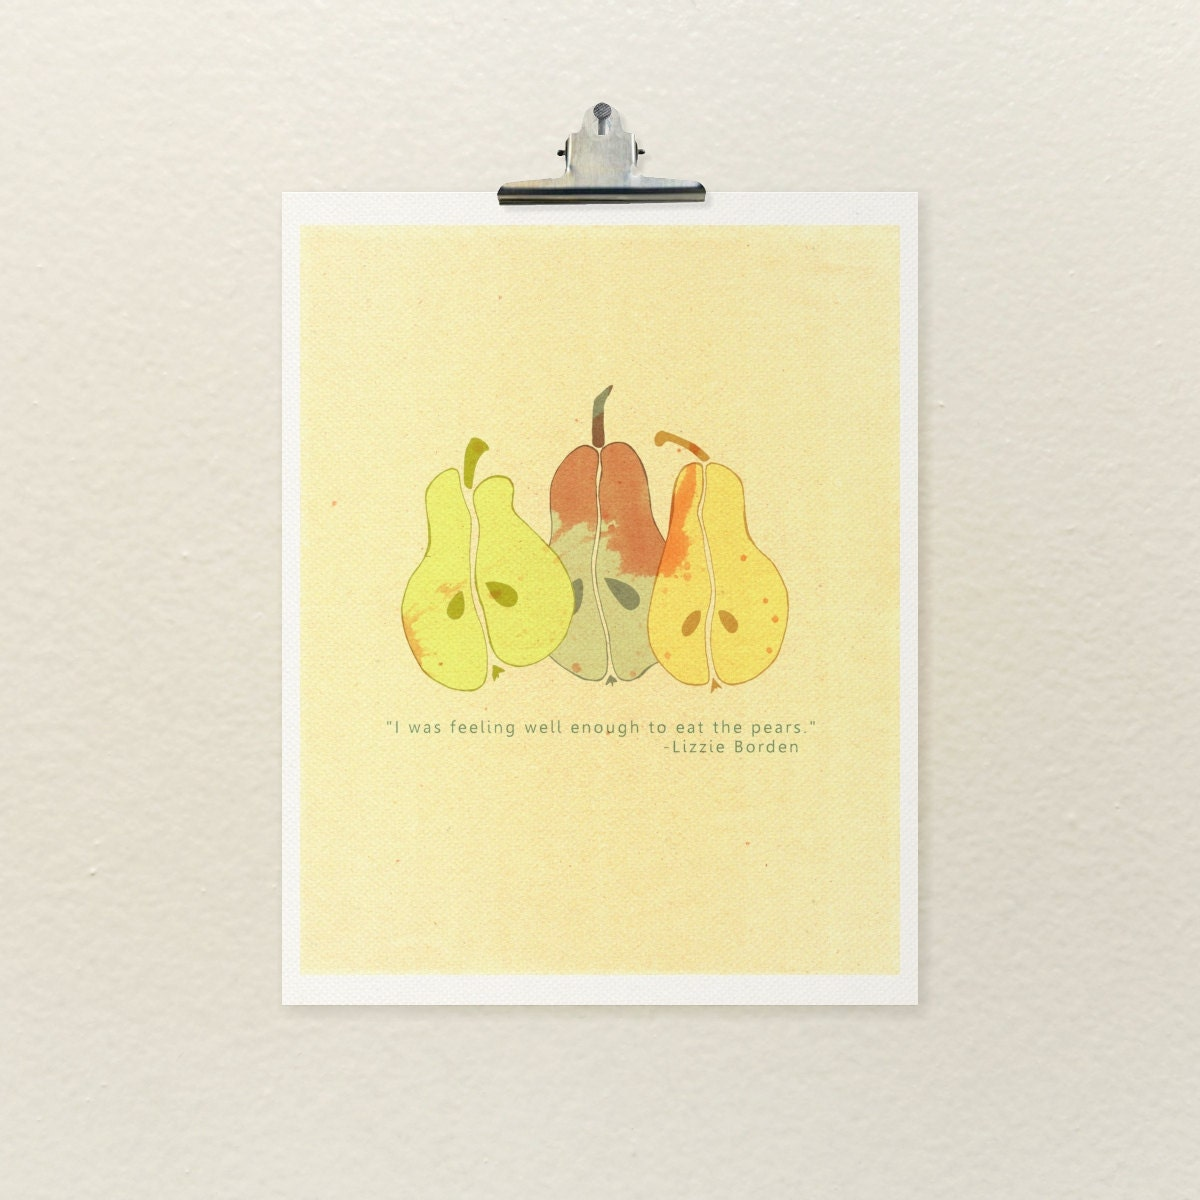 Quirky Kitchen Artwork: Lizzie's Pears // Typographic Print Quirky Gothic Kitchen